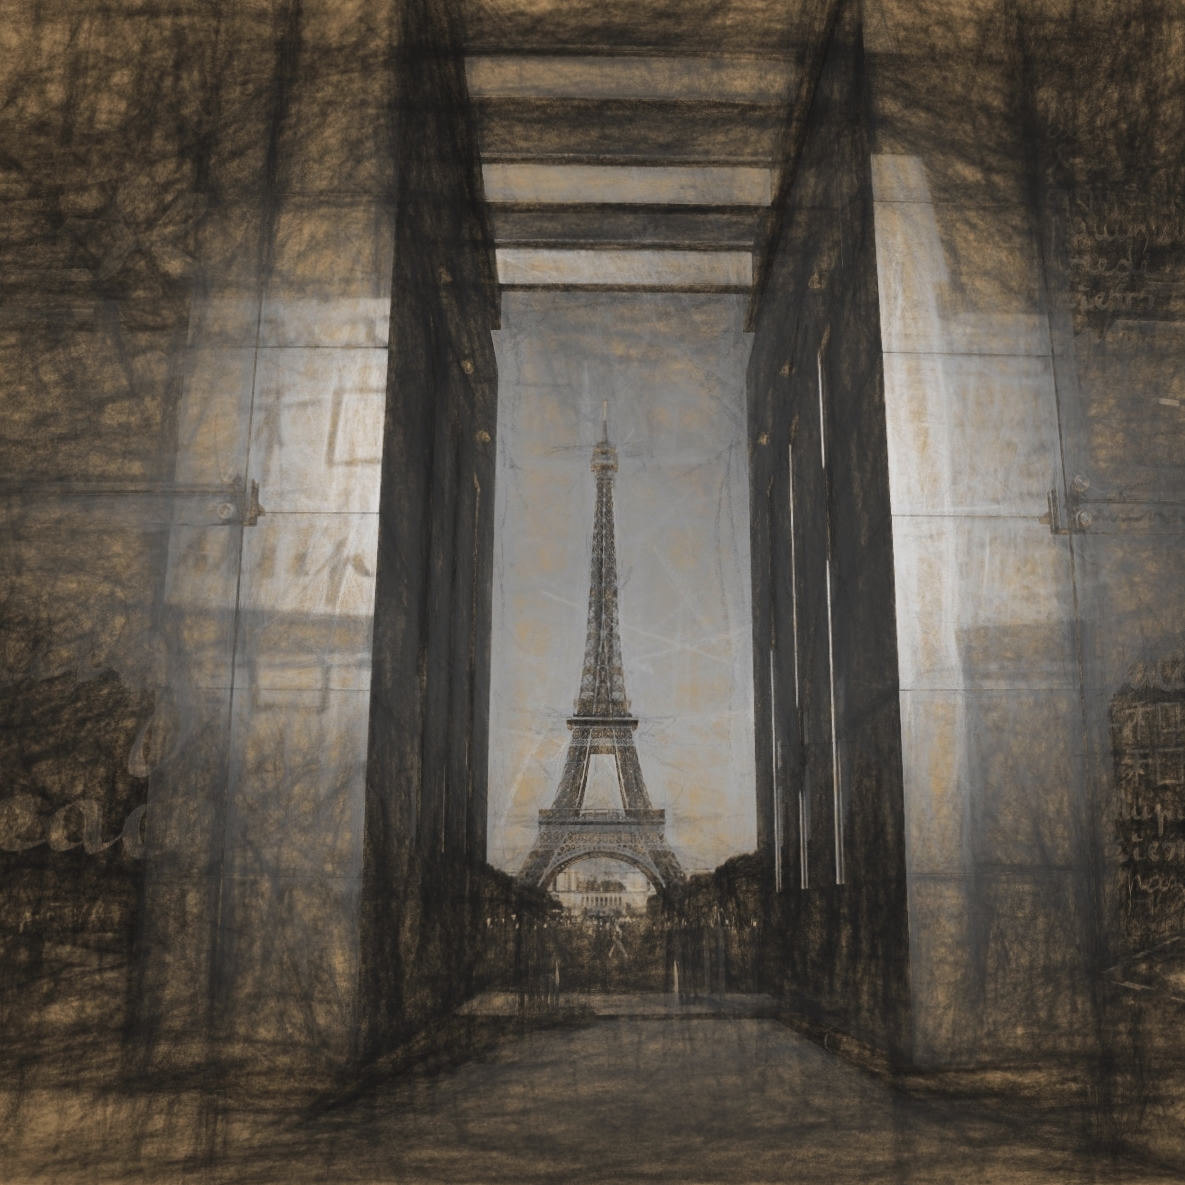 18-Paris-Neda-Vent-Fischer-Architectural-Photography-with-a-bit-of-a-Difference-www-designstack-co